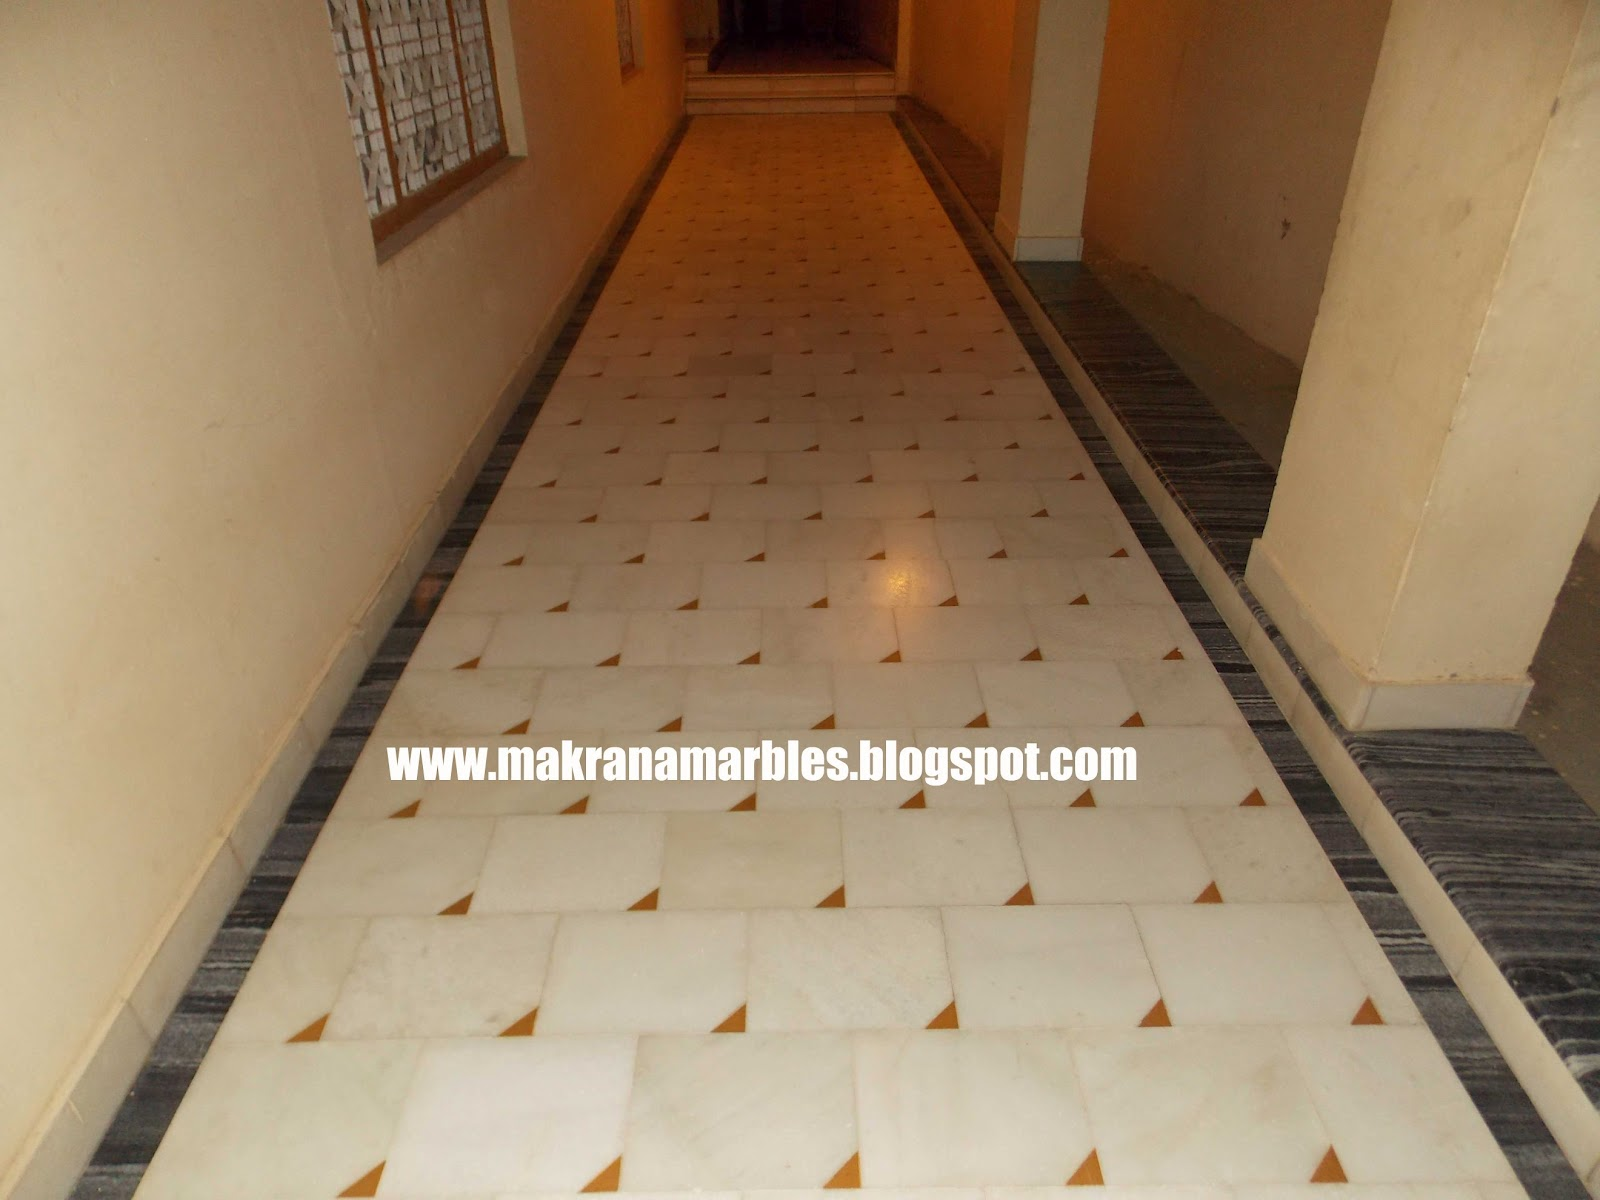 Floor Marbles Designs Makrana Marble Product And Pricing Details Flooring Pattern